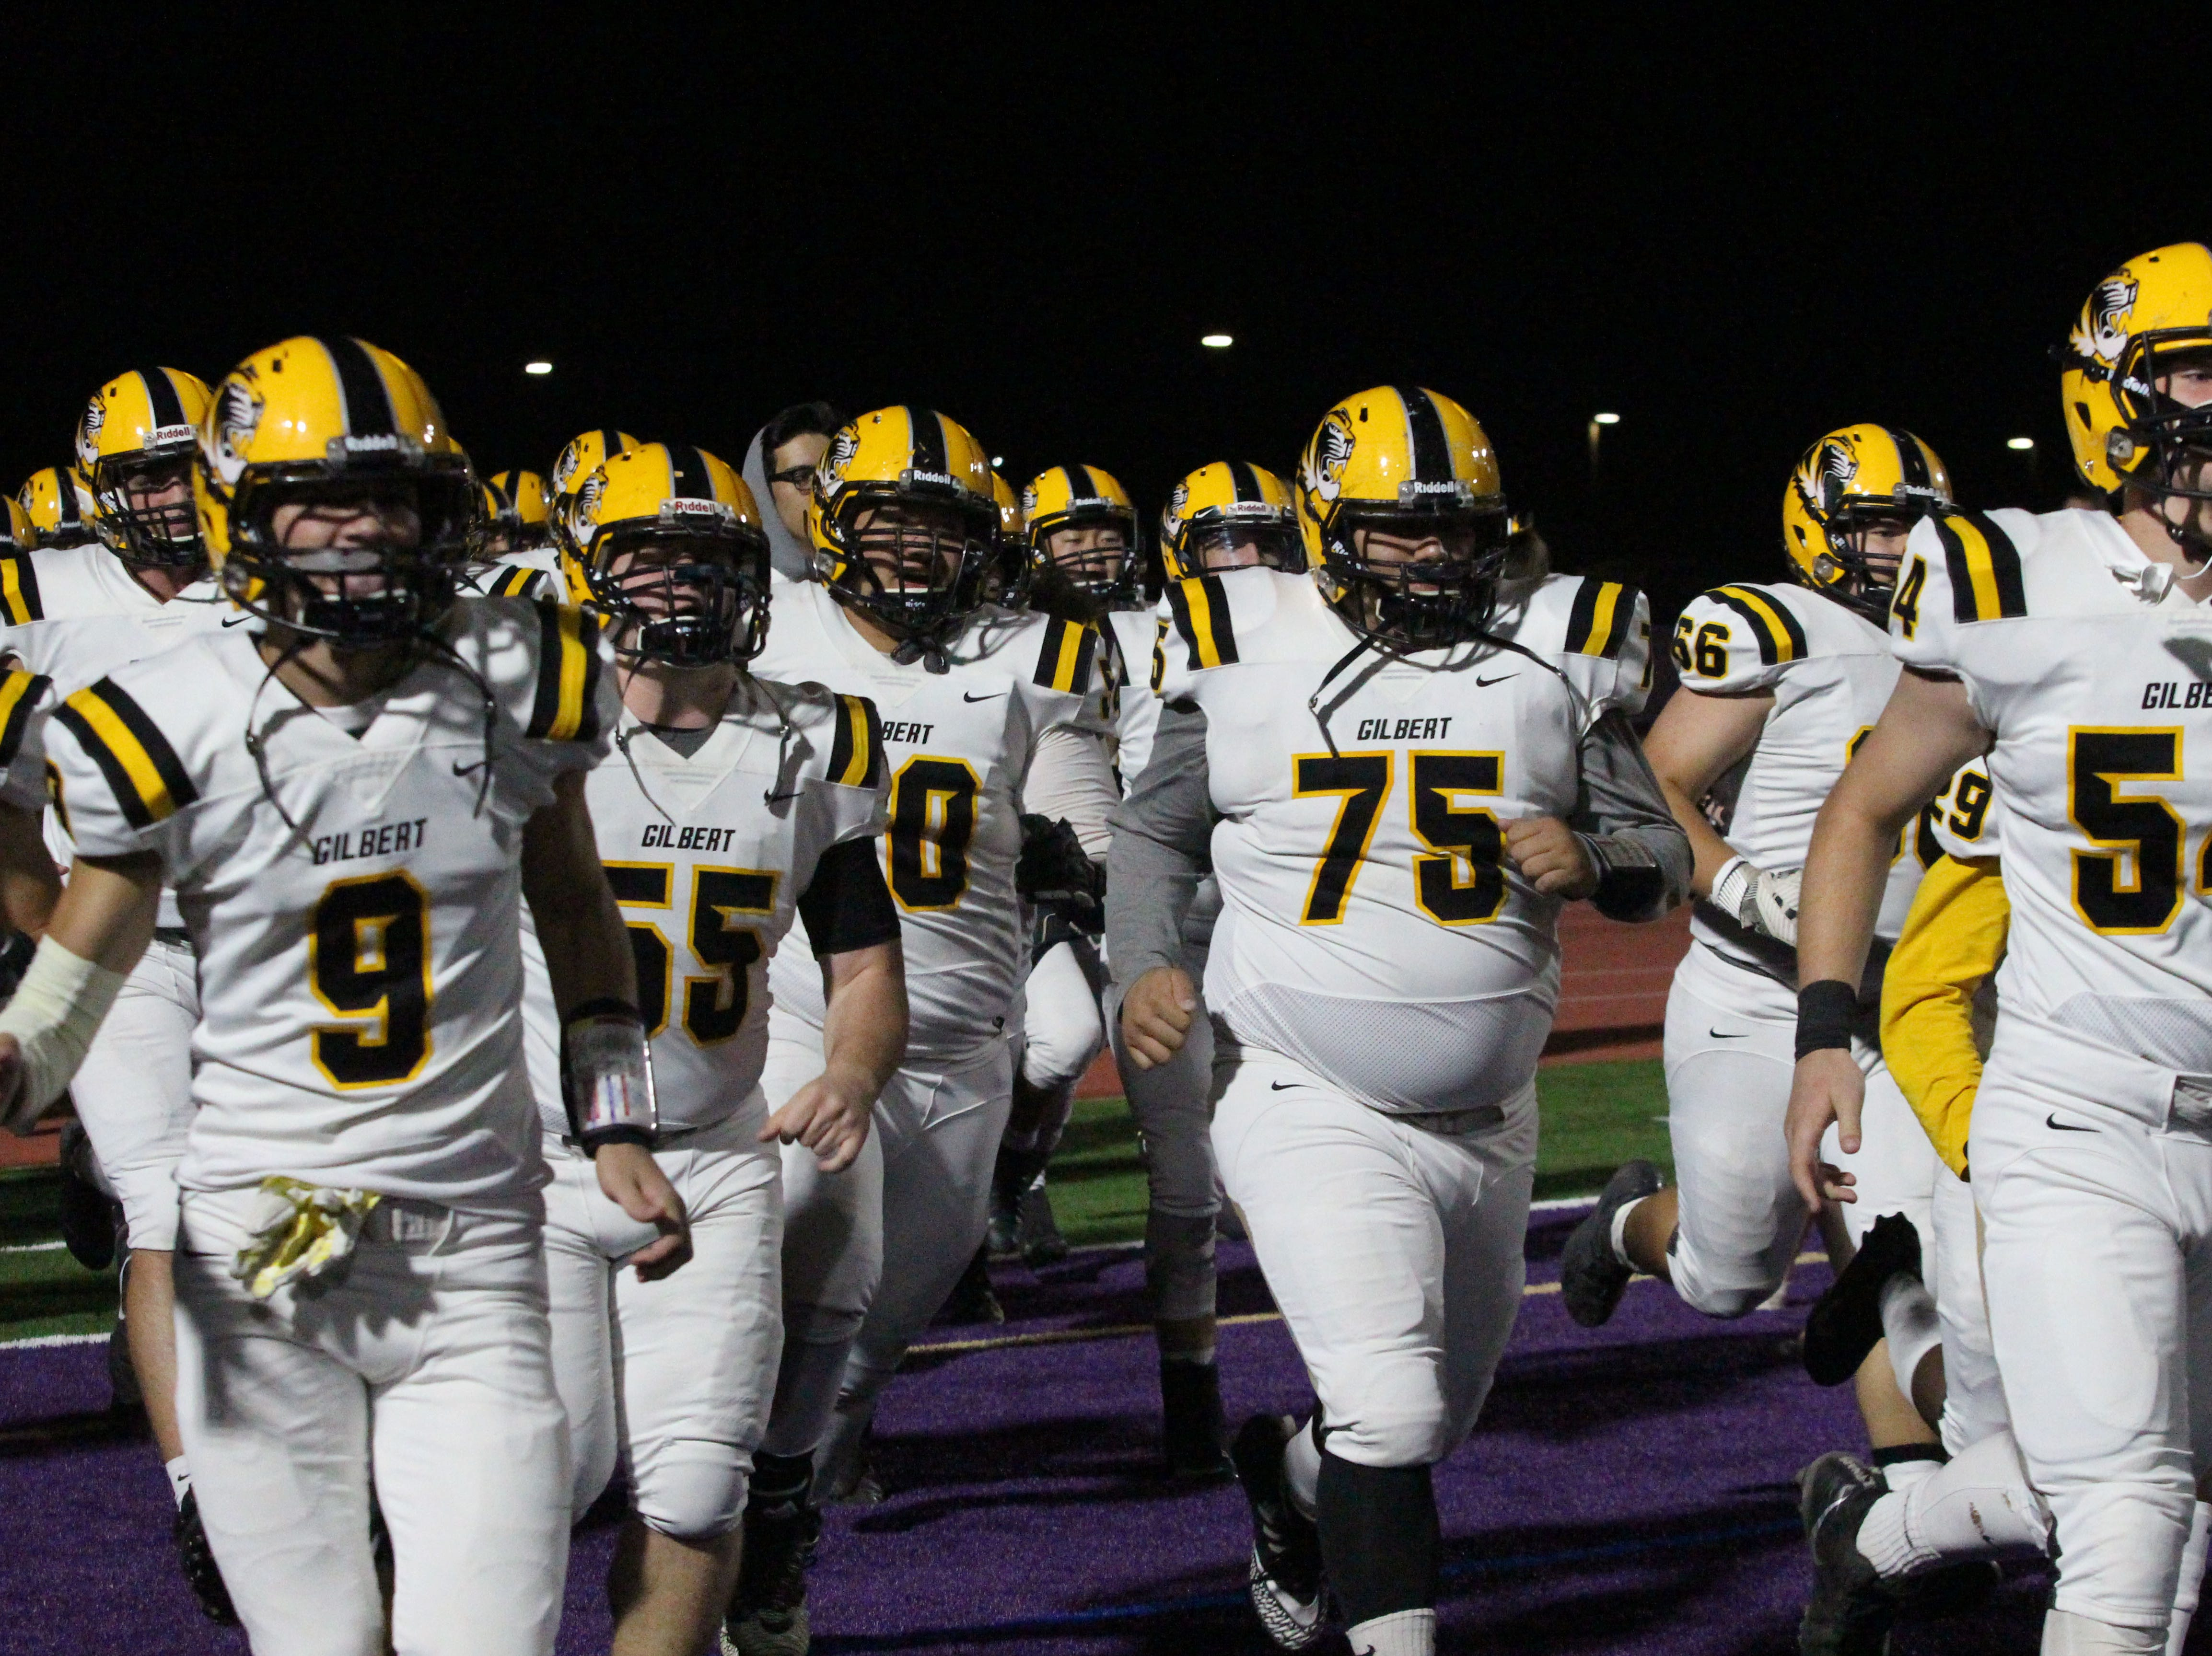 Gilbert runs onto the field before the Tigers' game against Notre Dame on Friday night at Notre Dame Preparatory High School on Nov. 2, 2018.